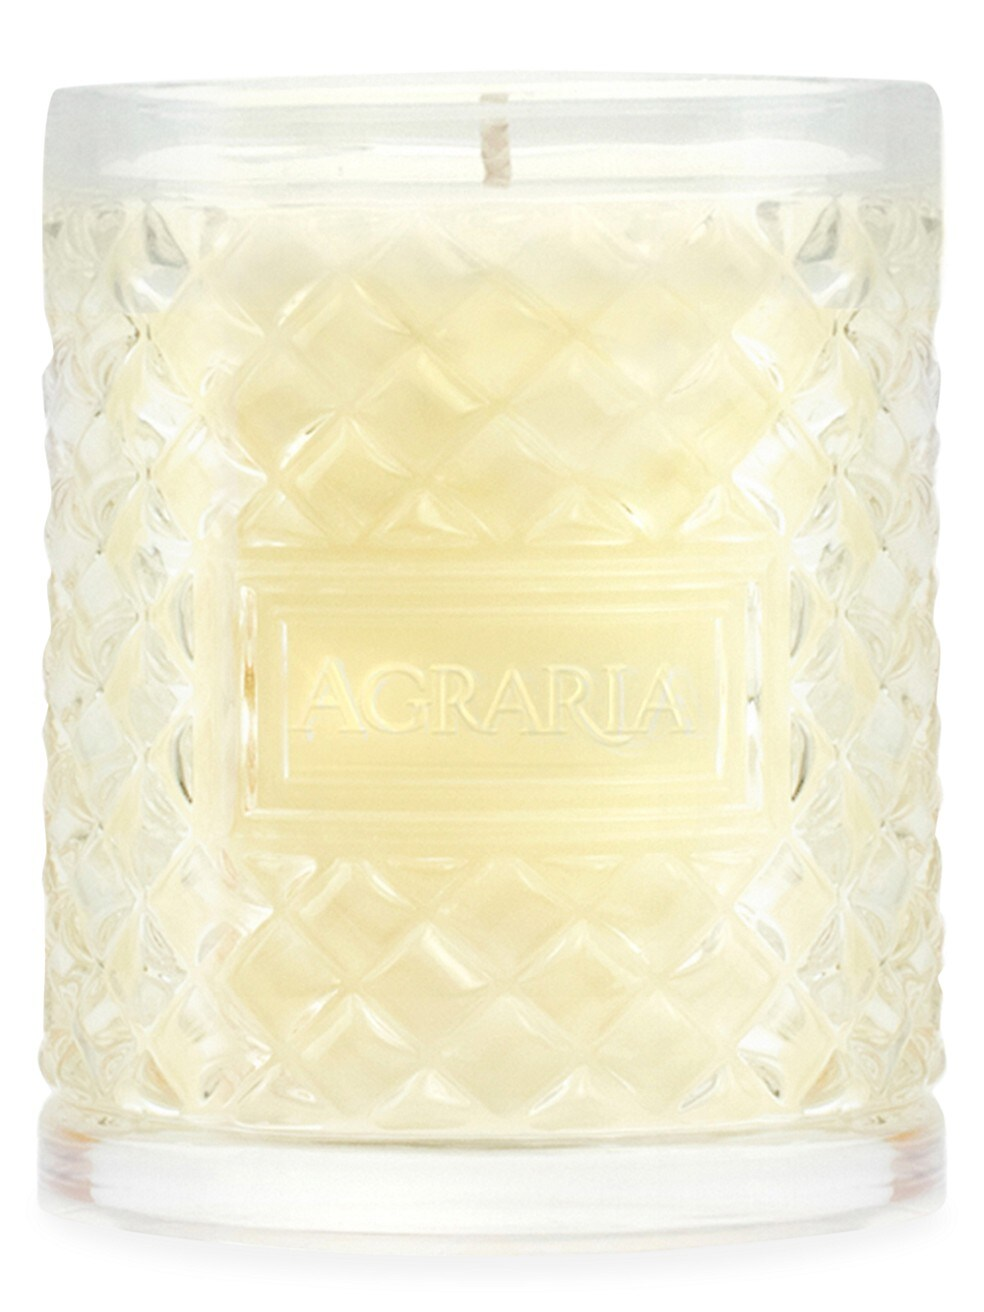 Agraria Golden Cassis Petite Perfume Candle